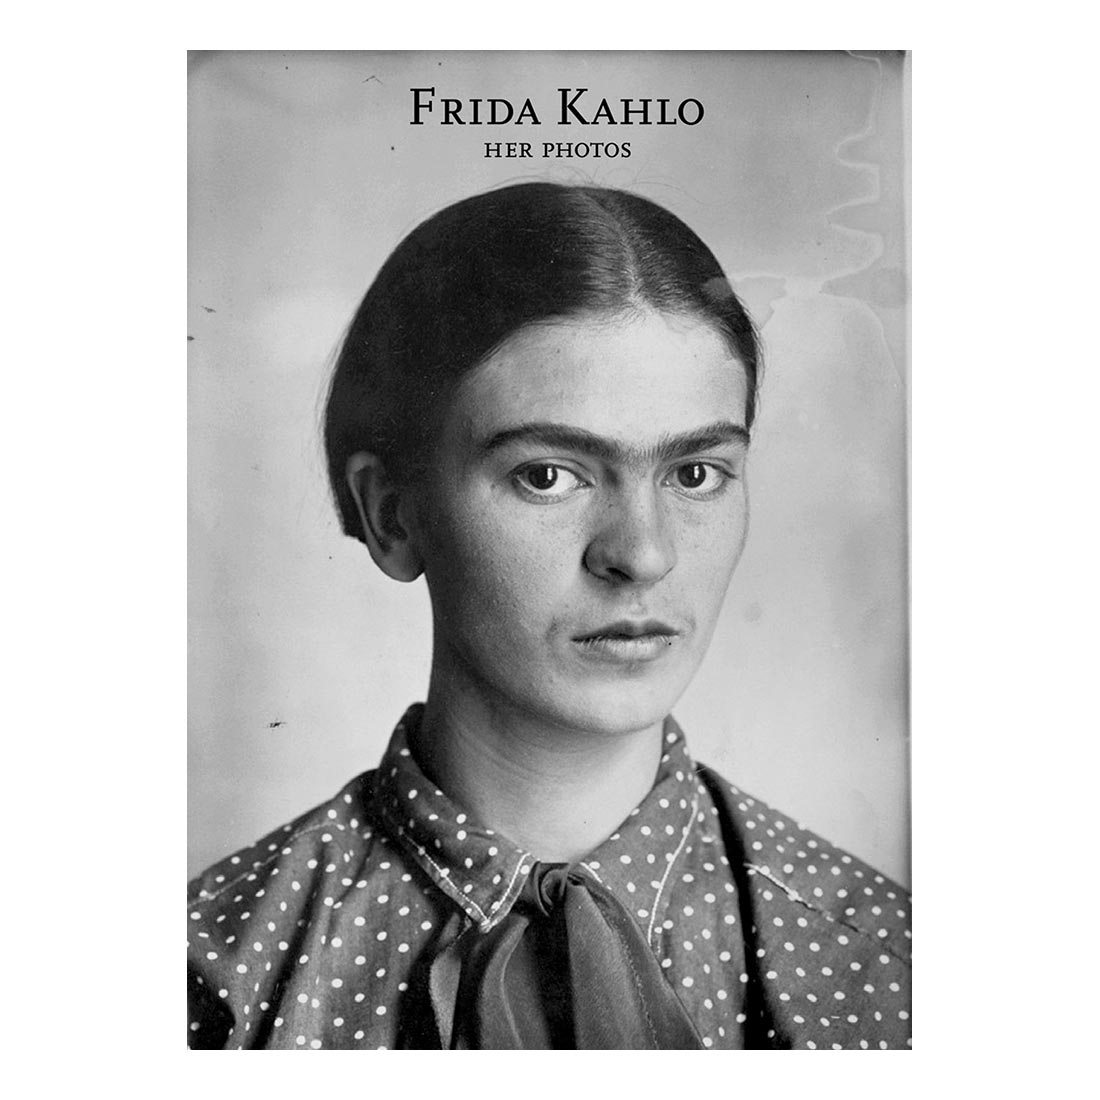 De young legion of honor museum stores frida kahlo her photos